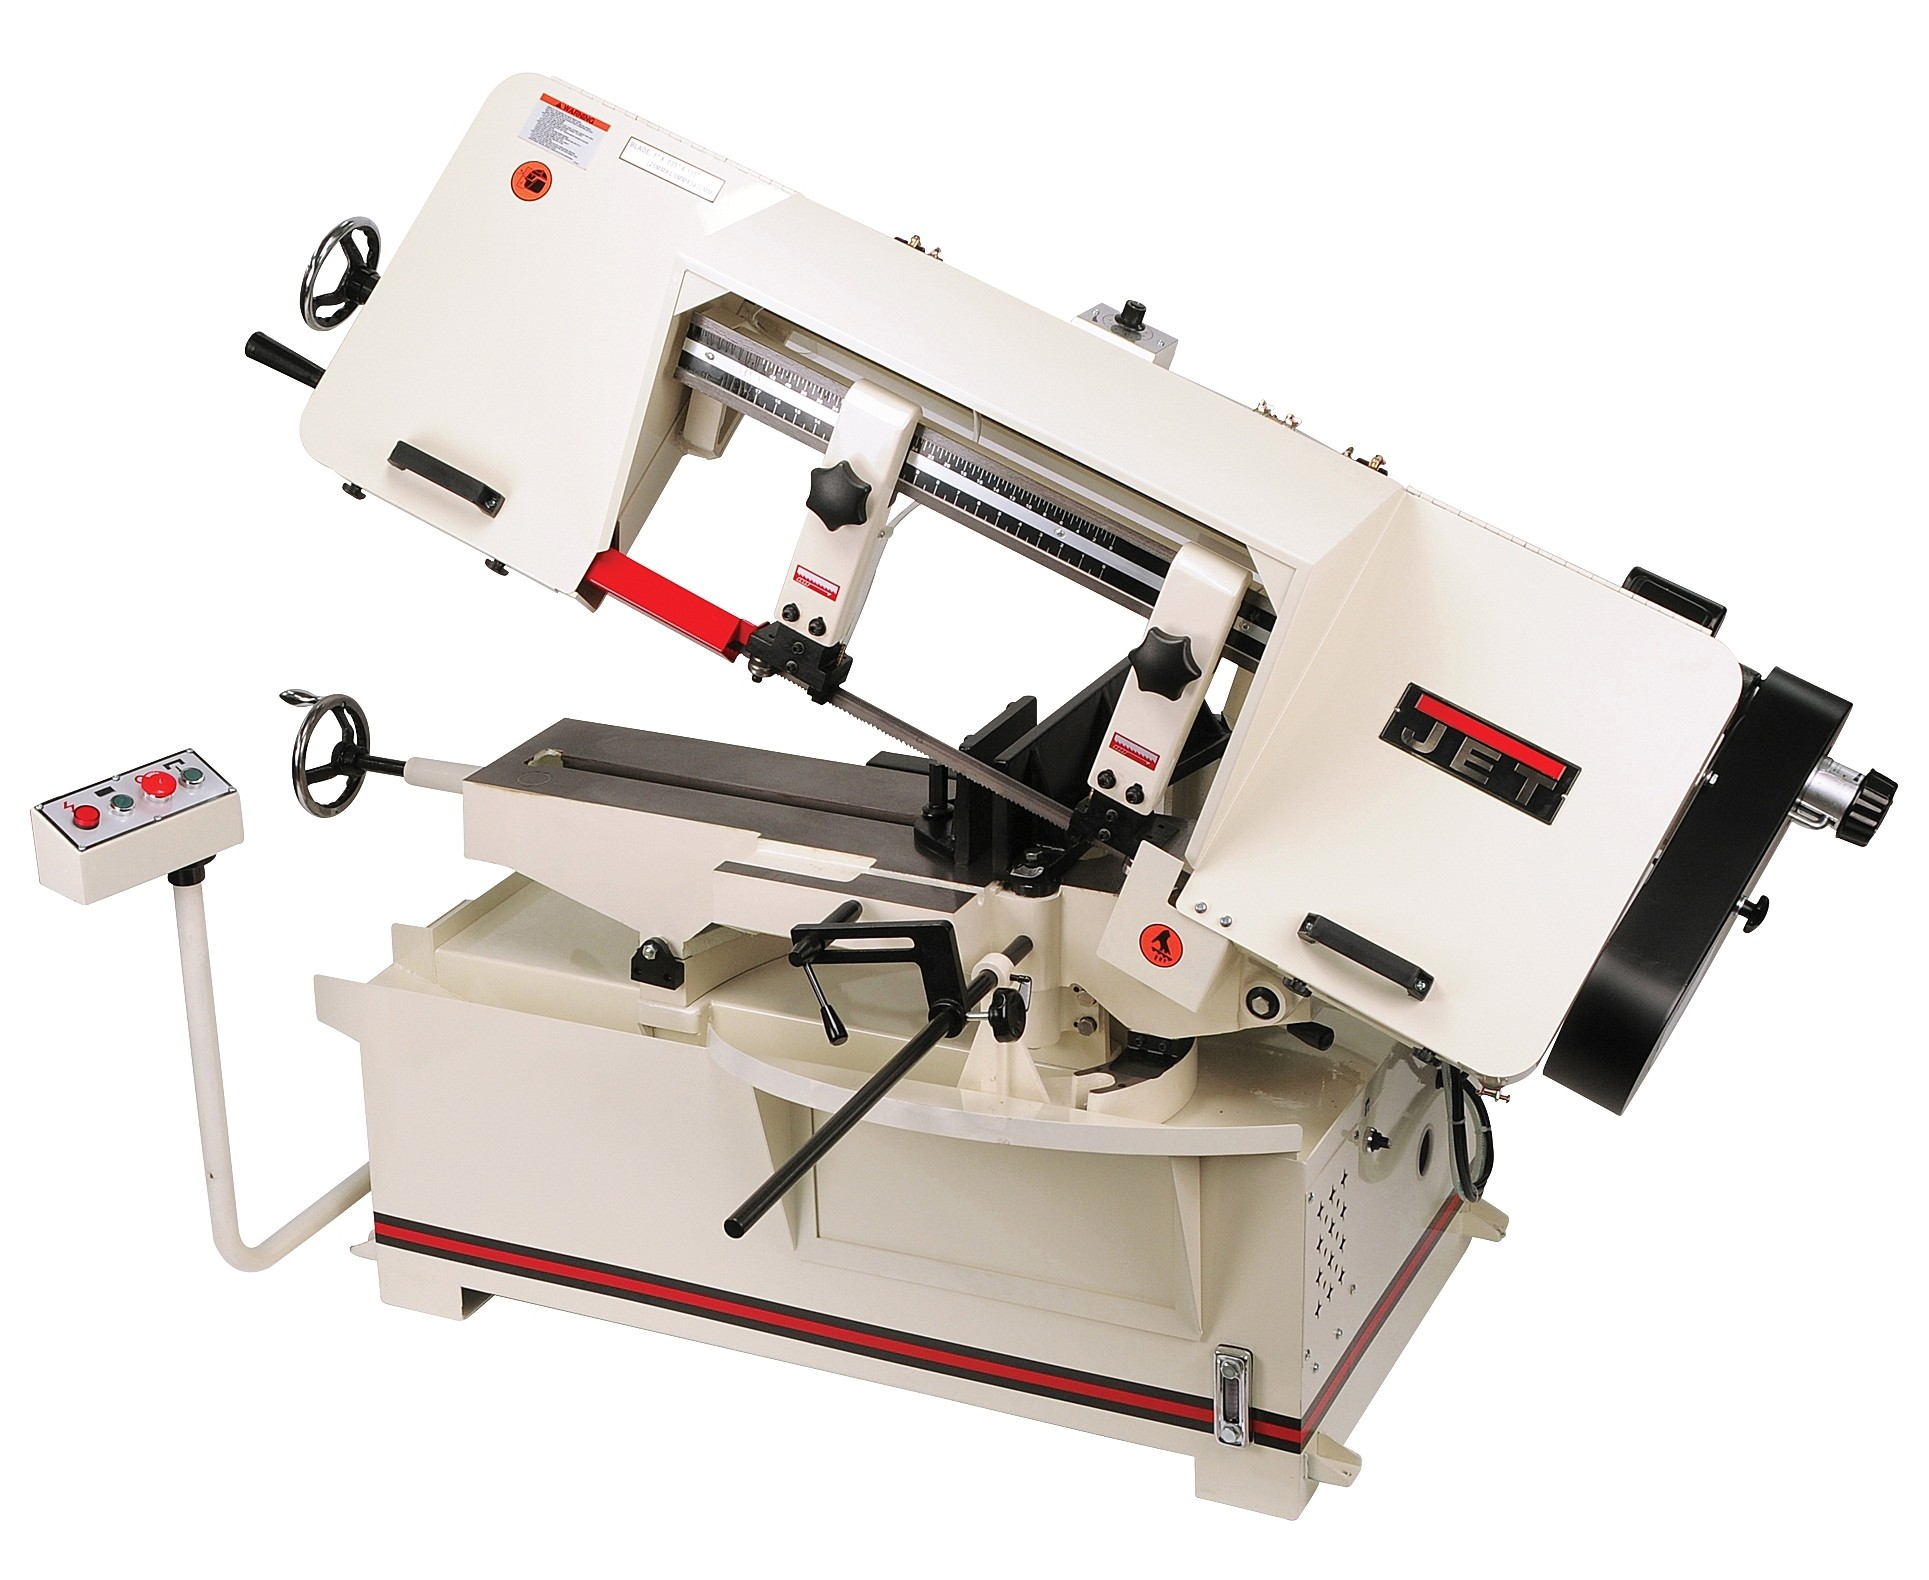 Jet Metal Cutter Saw